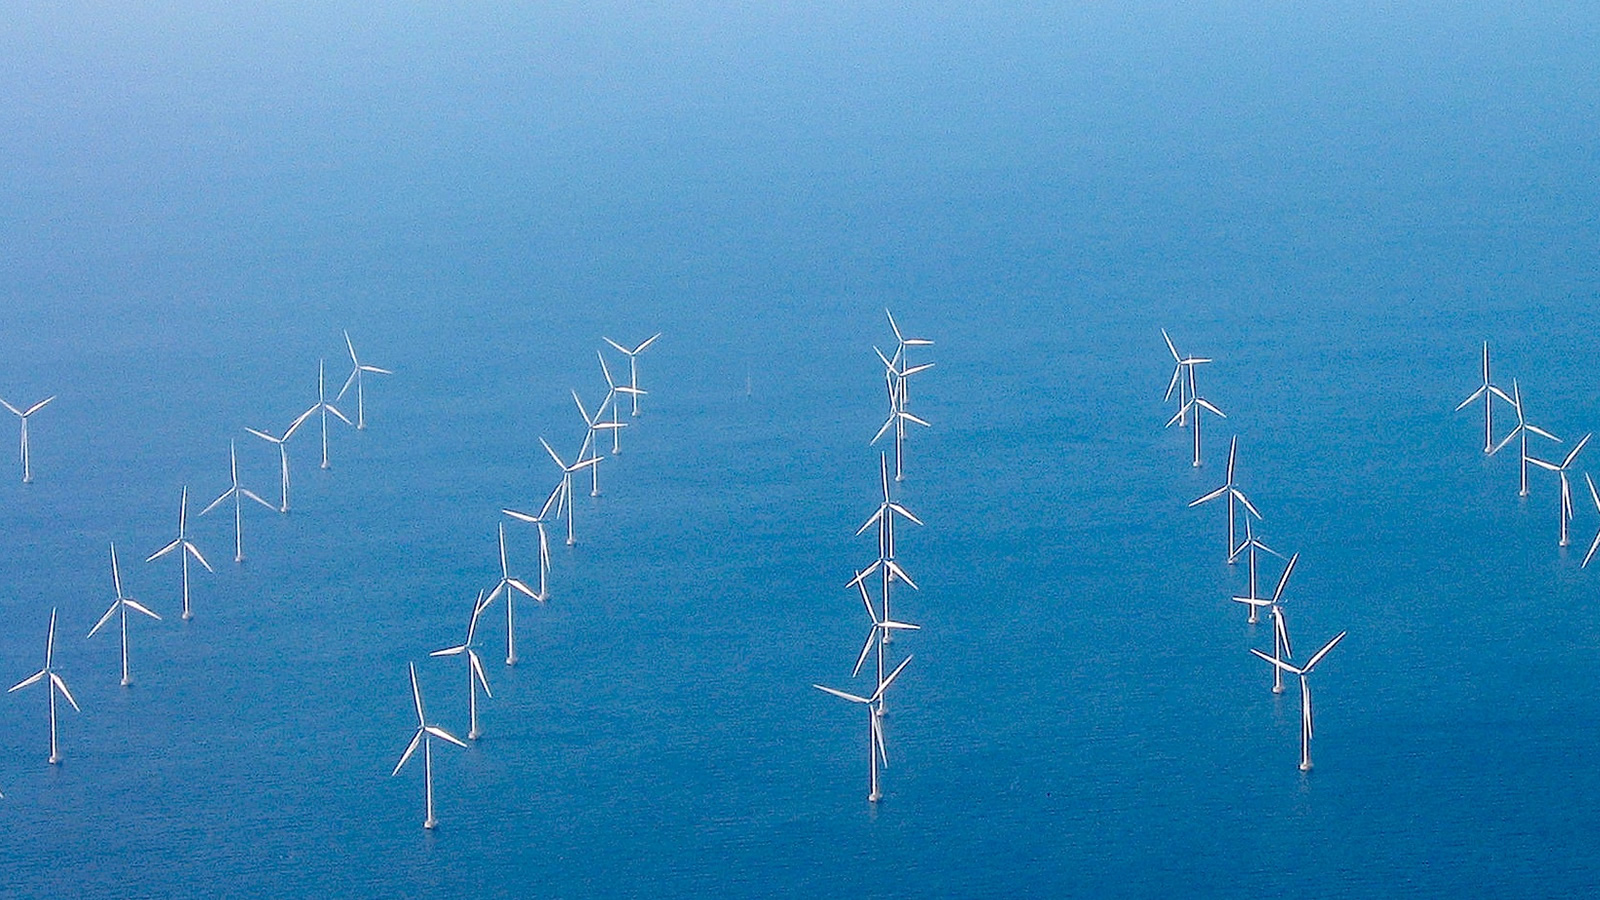 <h4>40 percent</h4><h5>Atlantic winds could ultimately meet 40 percent of current needs</h5><em>Lillgrund Wind Farm, Denmark / Mariusz Paździora CC BY-SA 3.0</em>